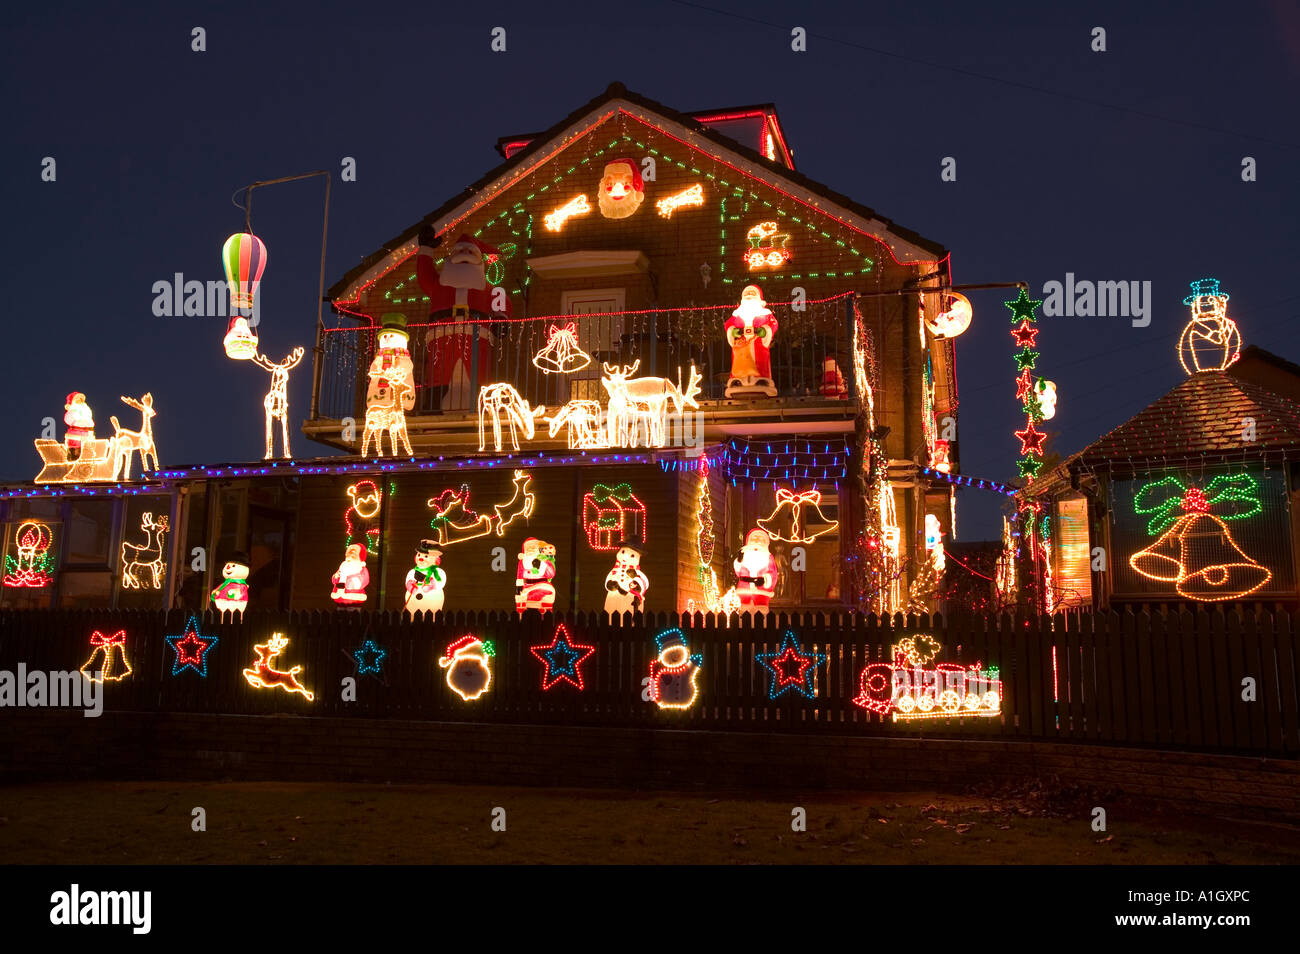 over the top christmas decorations on a house in clitheroe lancashire uk stock - Over The Top Christmas Decorations